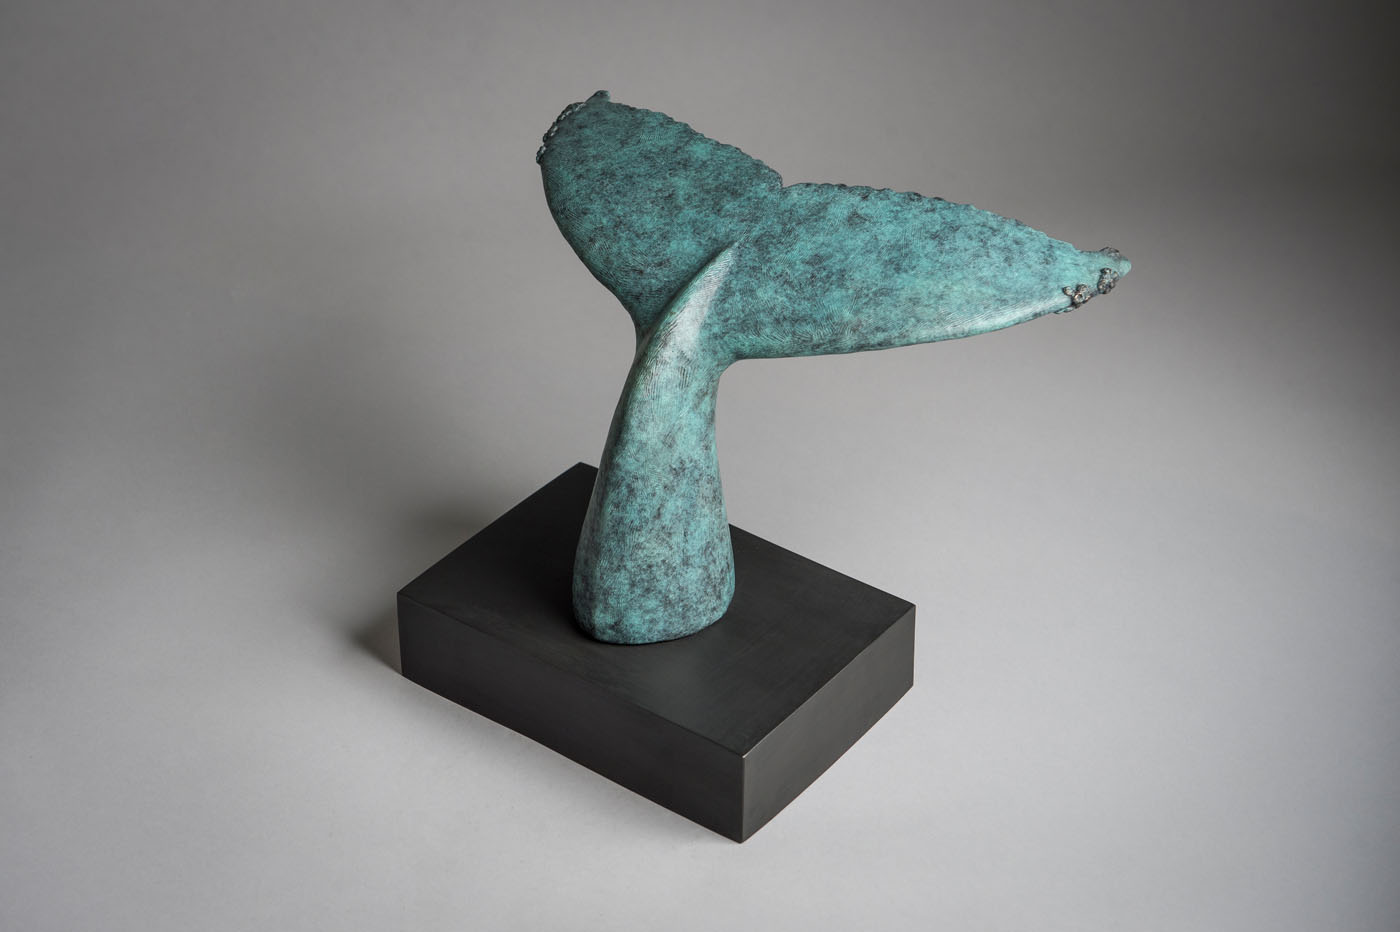 Bronze sculpture of a Humpback Whale tail by artist Anthony Smith